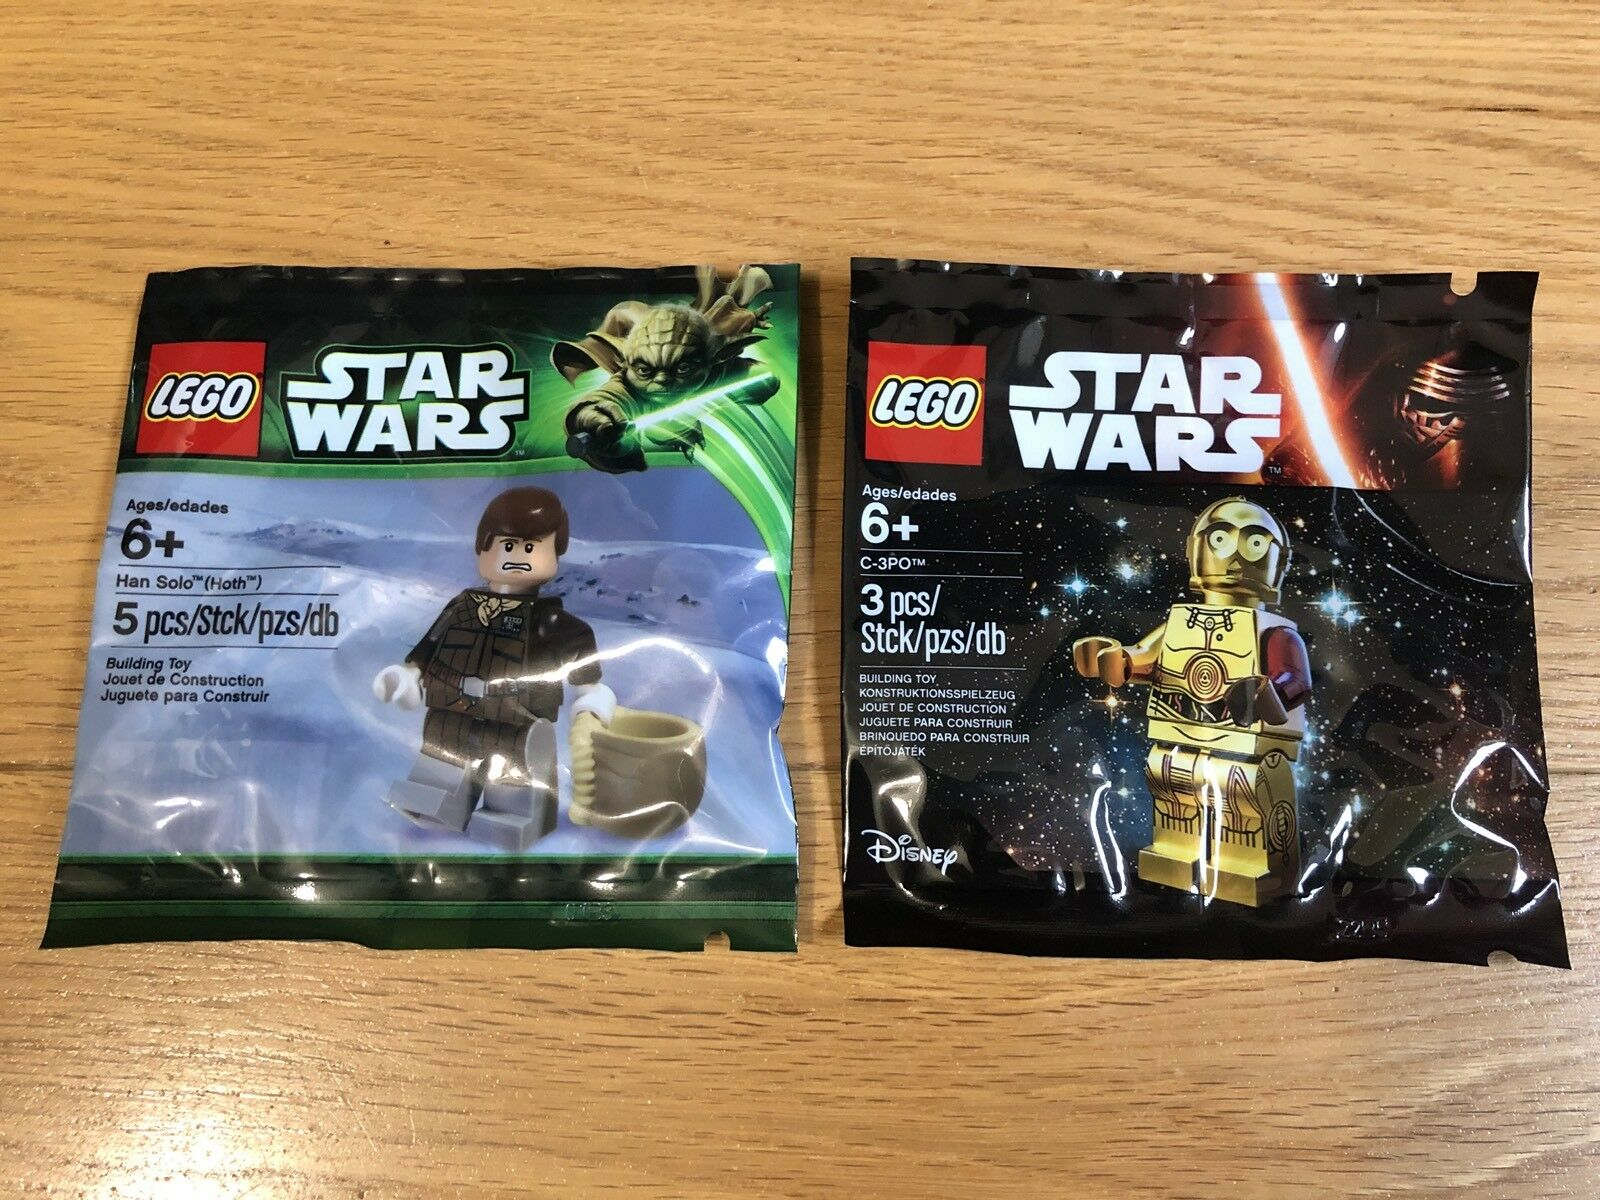 SEALED x2 Lego Star Wars Minifigure Minifigure Minifigure Polybags Collection EXCLUSIVE 21adb4